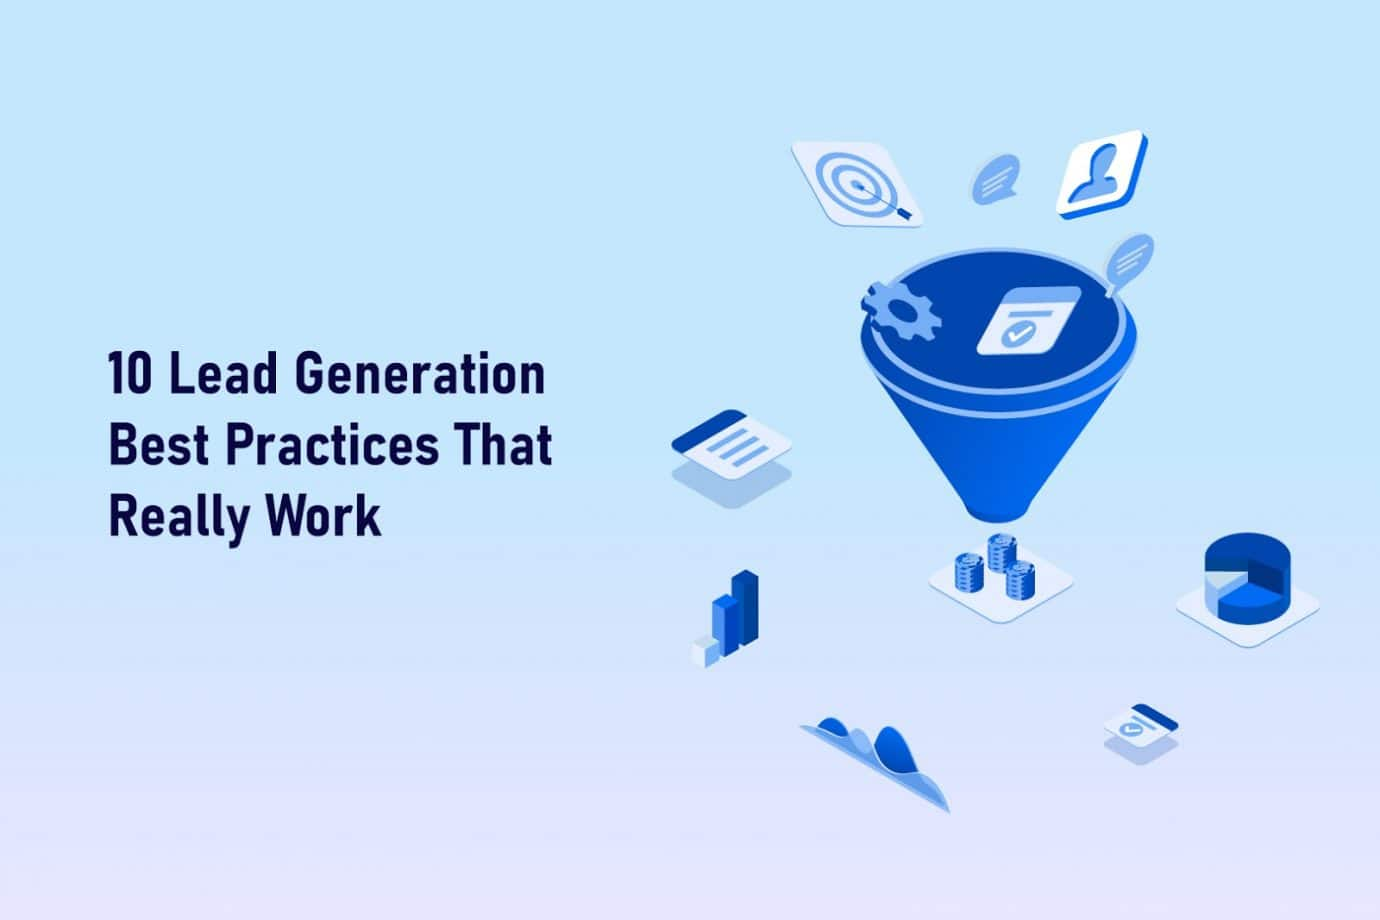 10 Lead Generation Best Practices That Really Work